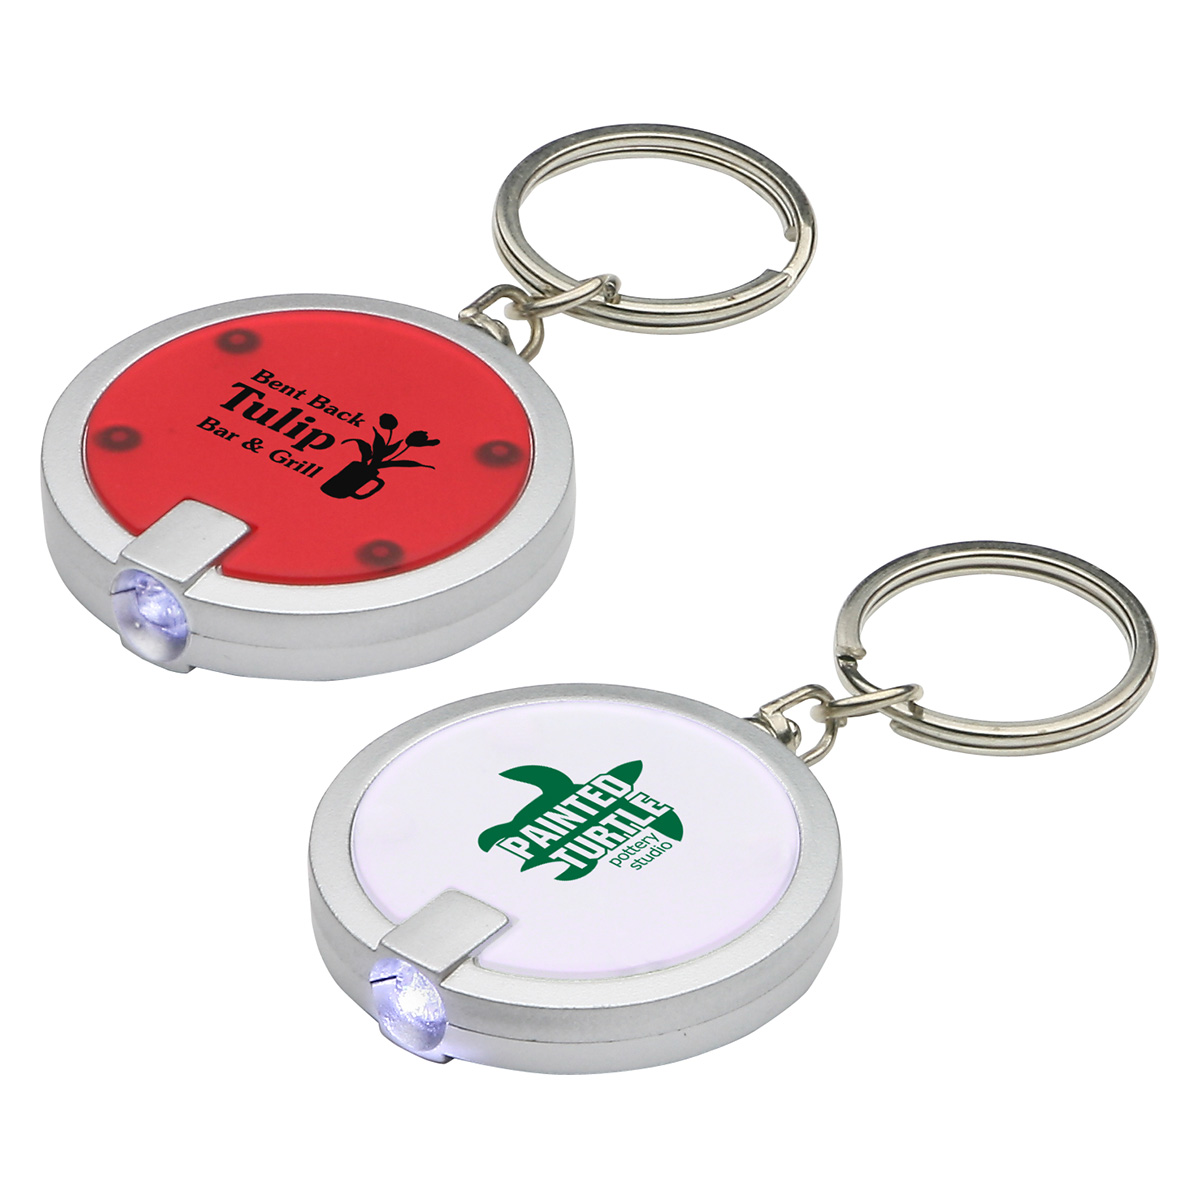 Round Simple Touch LED Key Chain, WLT-RS11, 1 Colour Imprint